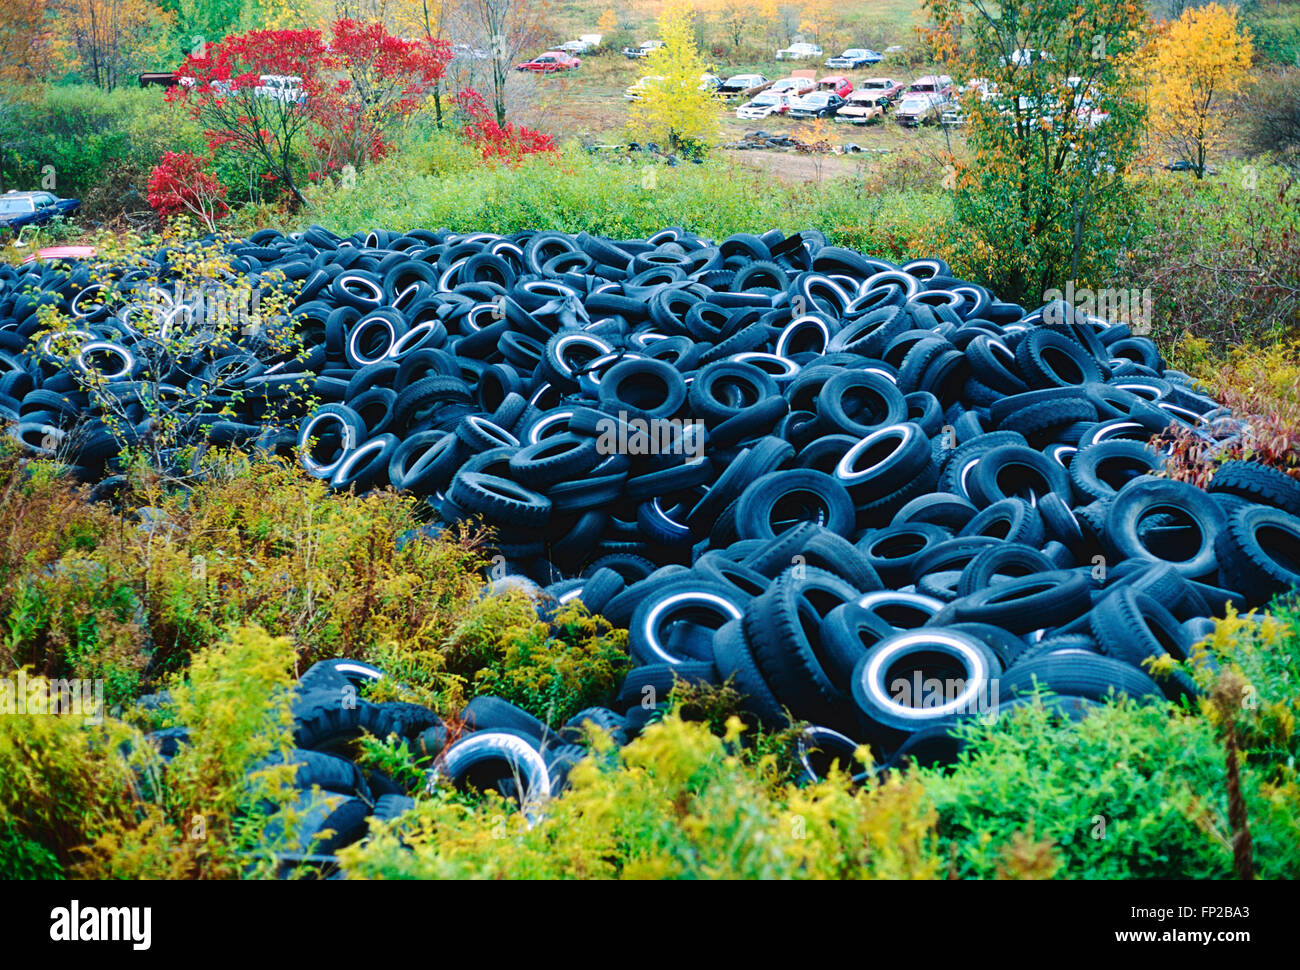 Old used automobile tires in landfill - Stock Image